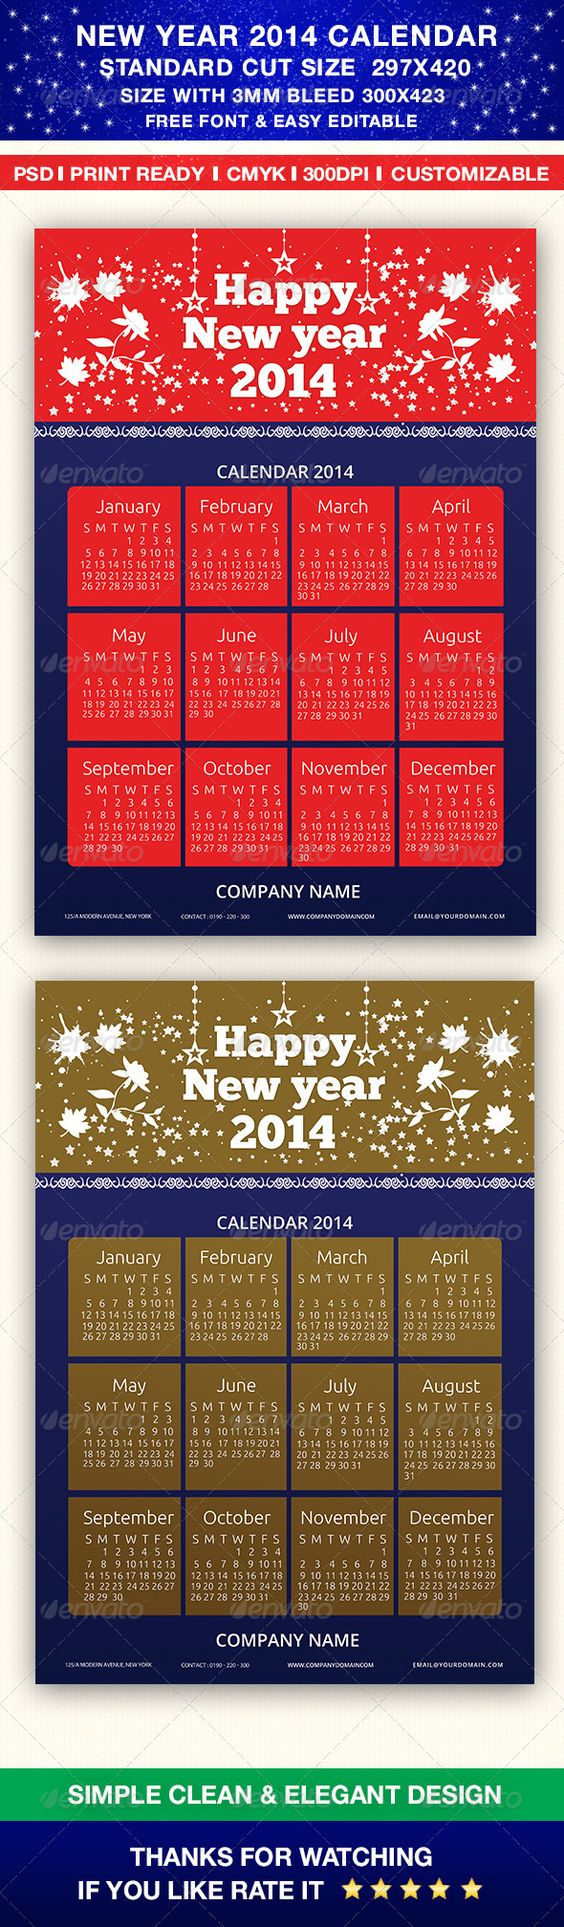 Realistic Graphic DOWNLOAD (.ai, .psd) :: http://realistic-graphics.ovh/pinterest-itmid-1006448894i.html ... New Year 2014 Calendar ...  300 dpi, a3, calendar, cmyk, company, corporate, date, days, design, months, new, office, personal, print ready, professional, psd, template, wall, wall calendar, week, year, year 2014  ... Realistic Photo Graphic Print Obejct Business Web Elements Illustration Design Templates ... DOWNLOAD :: http://realistic-graphics.ovh/pinterest-itmid-1006448894i.html